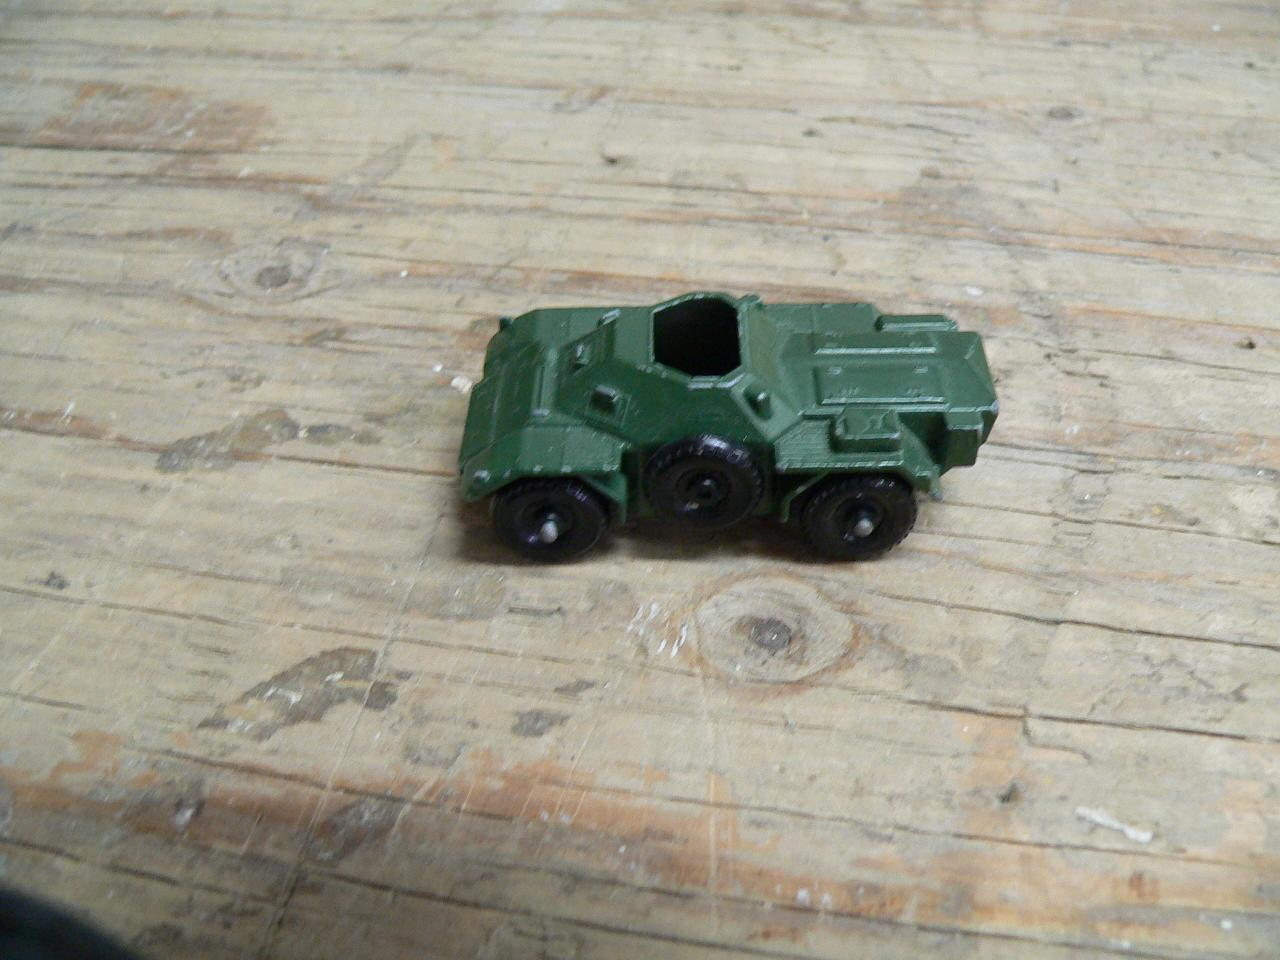 Ferret scout car # 4465.7